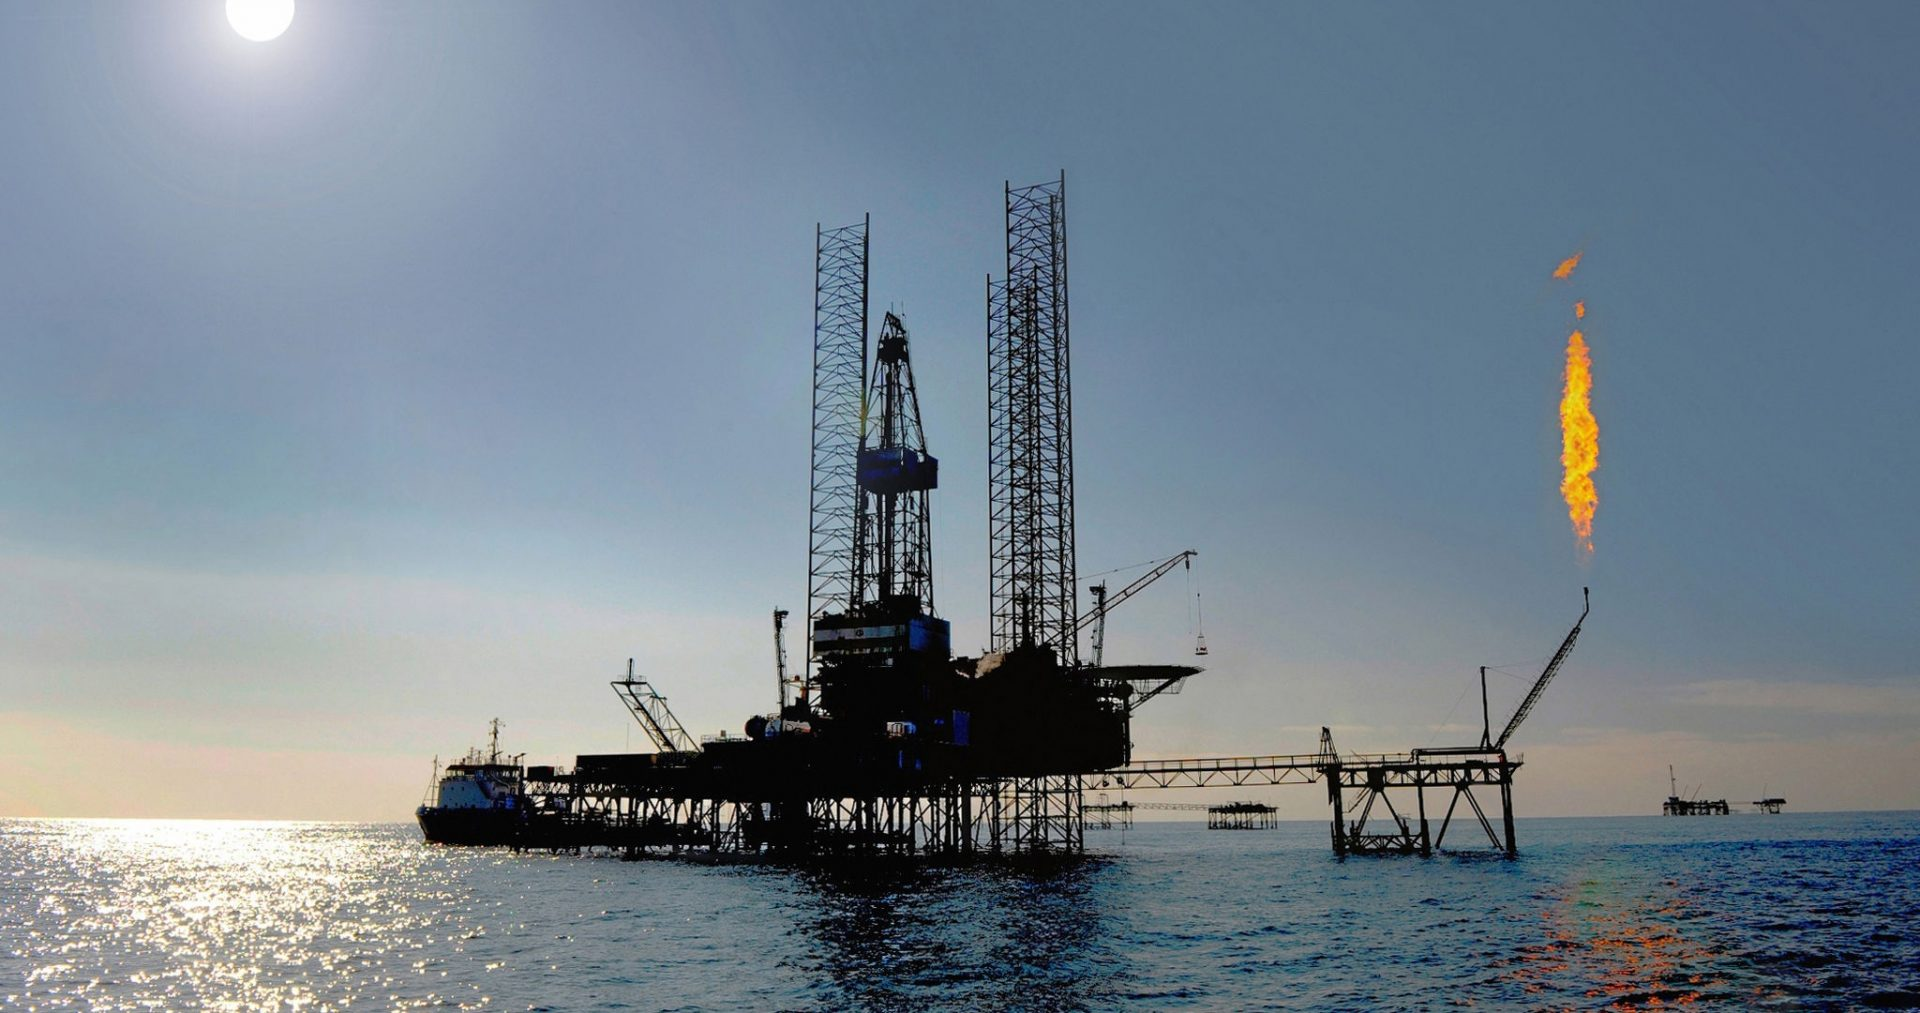 Jack up rig in the caspian sea e1463321890331